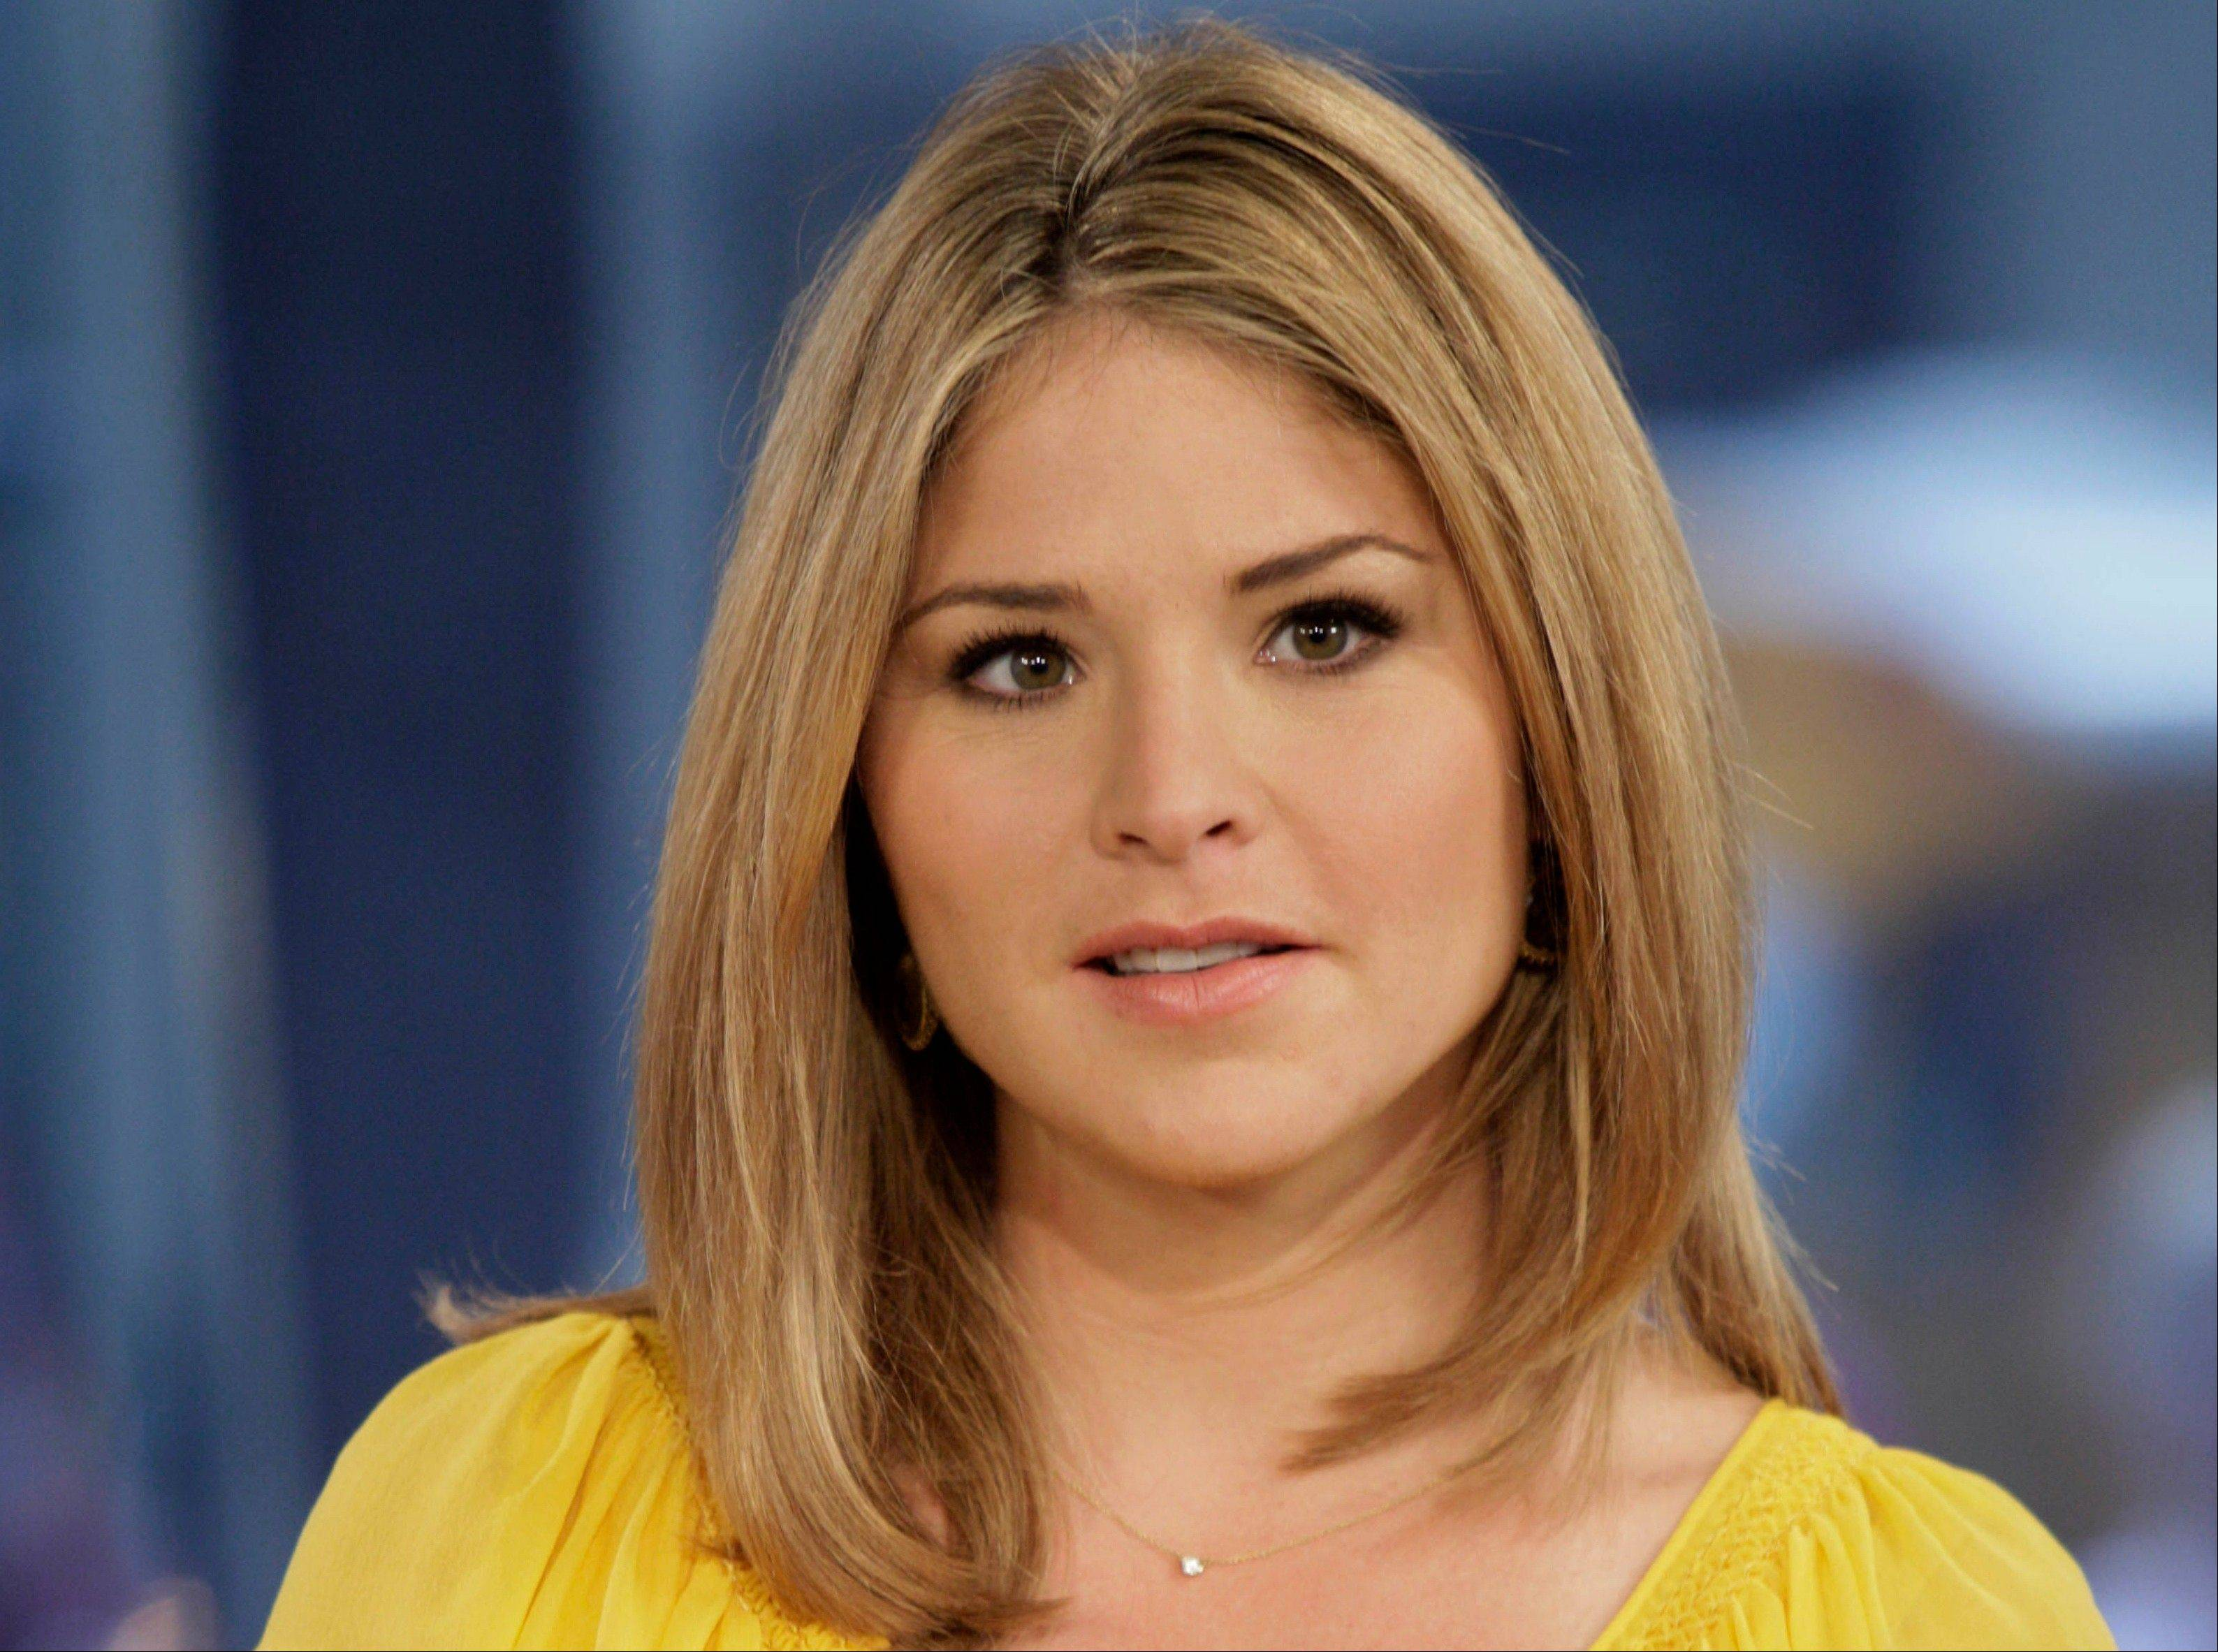 Former first daughter Jenna Bush Hager announced Wednesday she's pregnant with her first child, due in the spring.